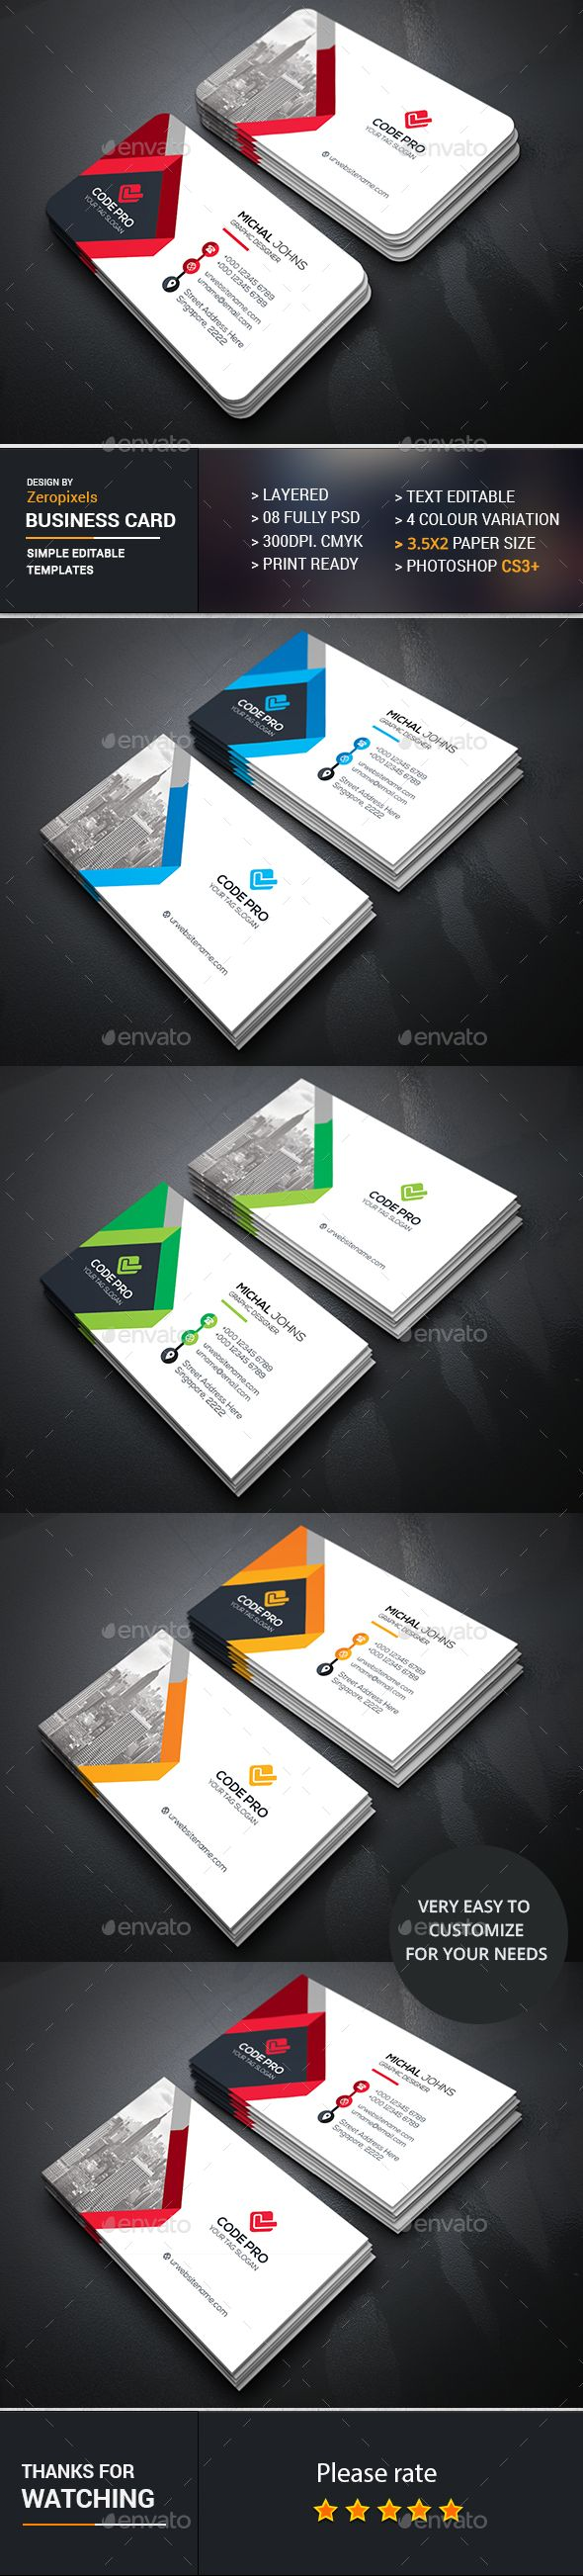 Business Card Template PSD. Download here: https://graphicriver.net/item/business-card/16937942?ref=ksioks